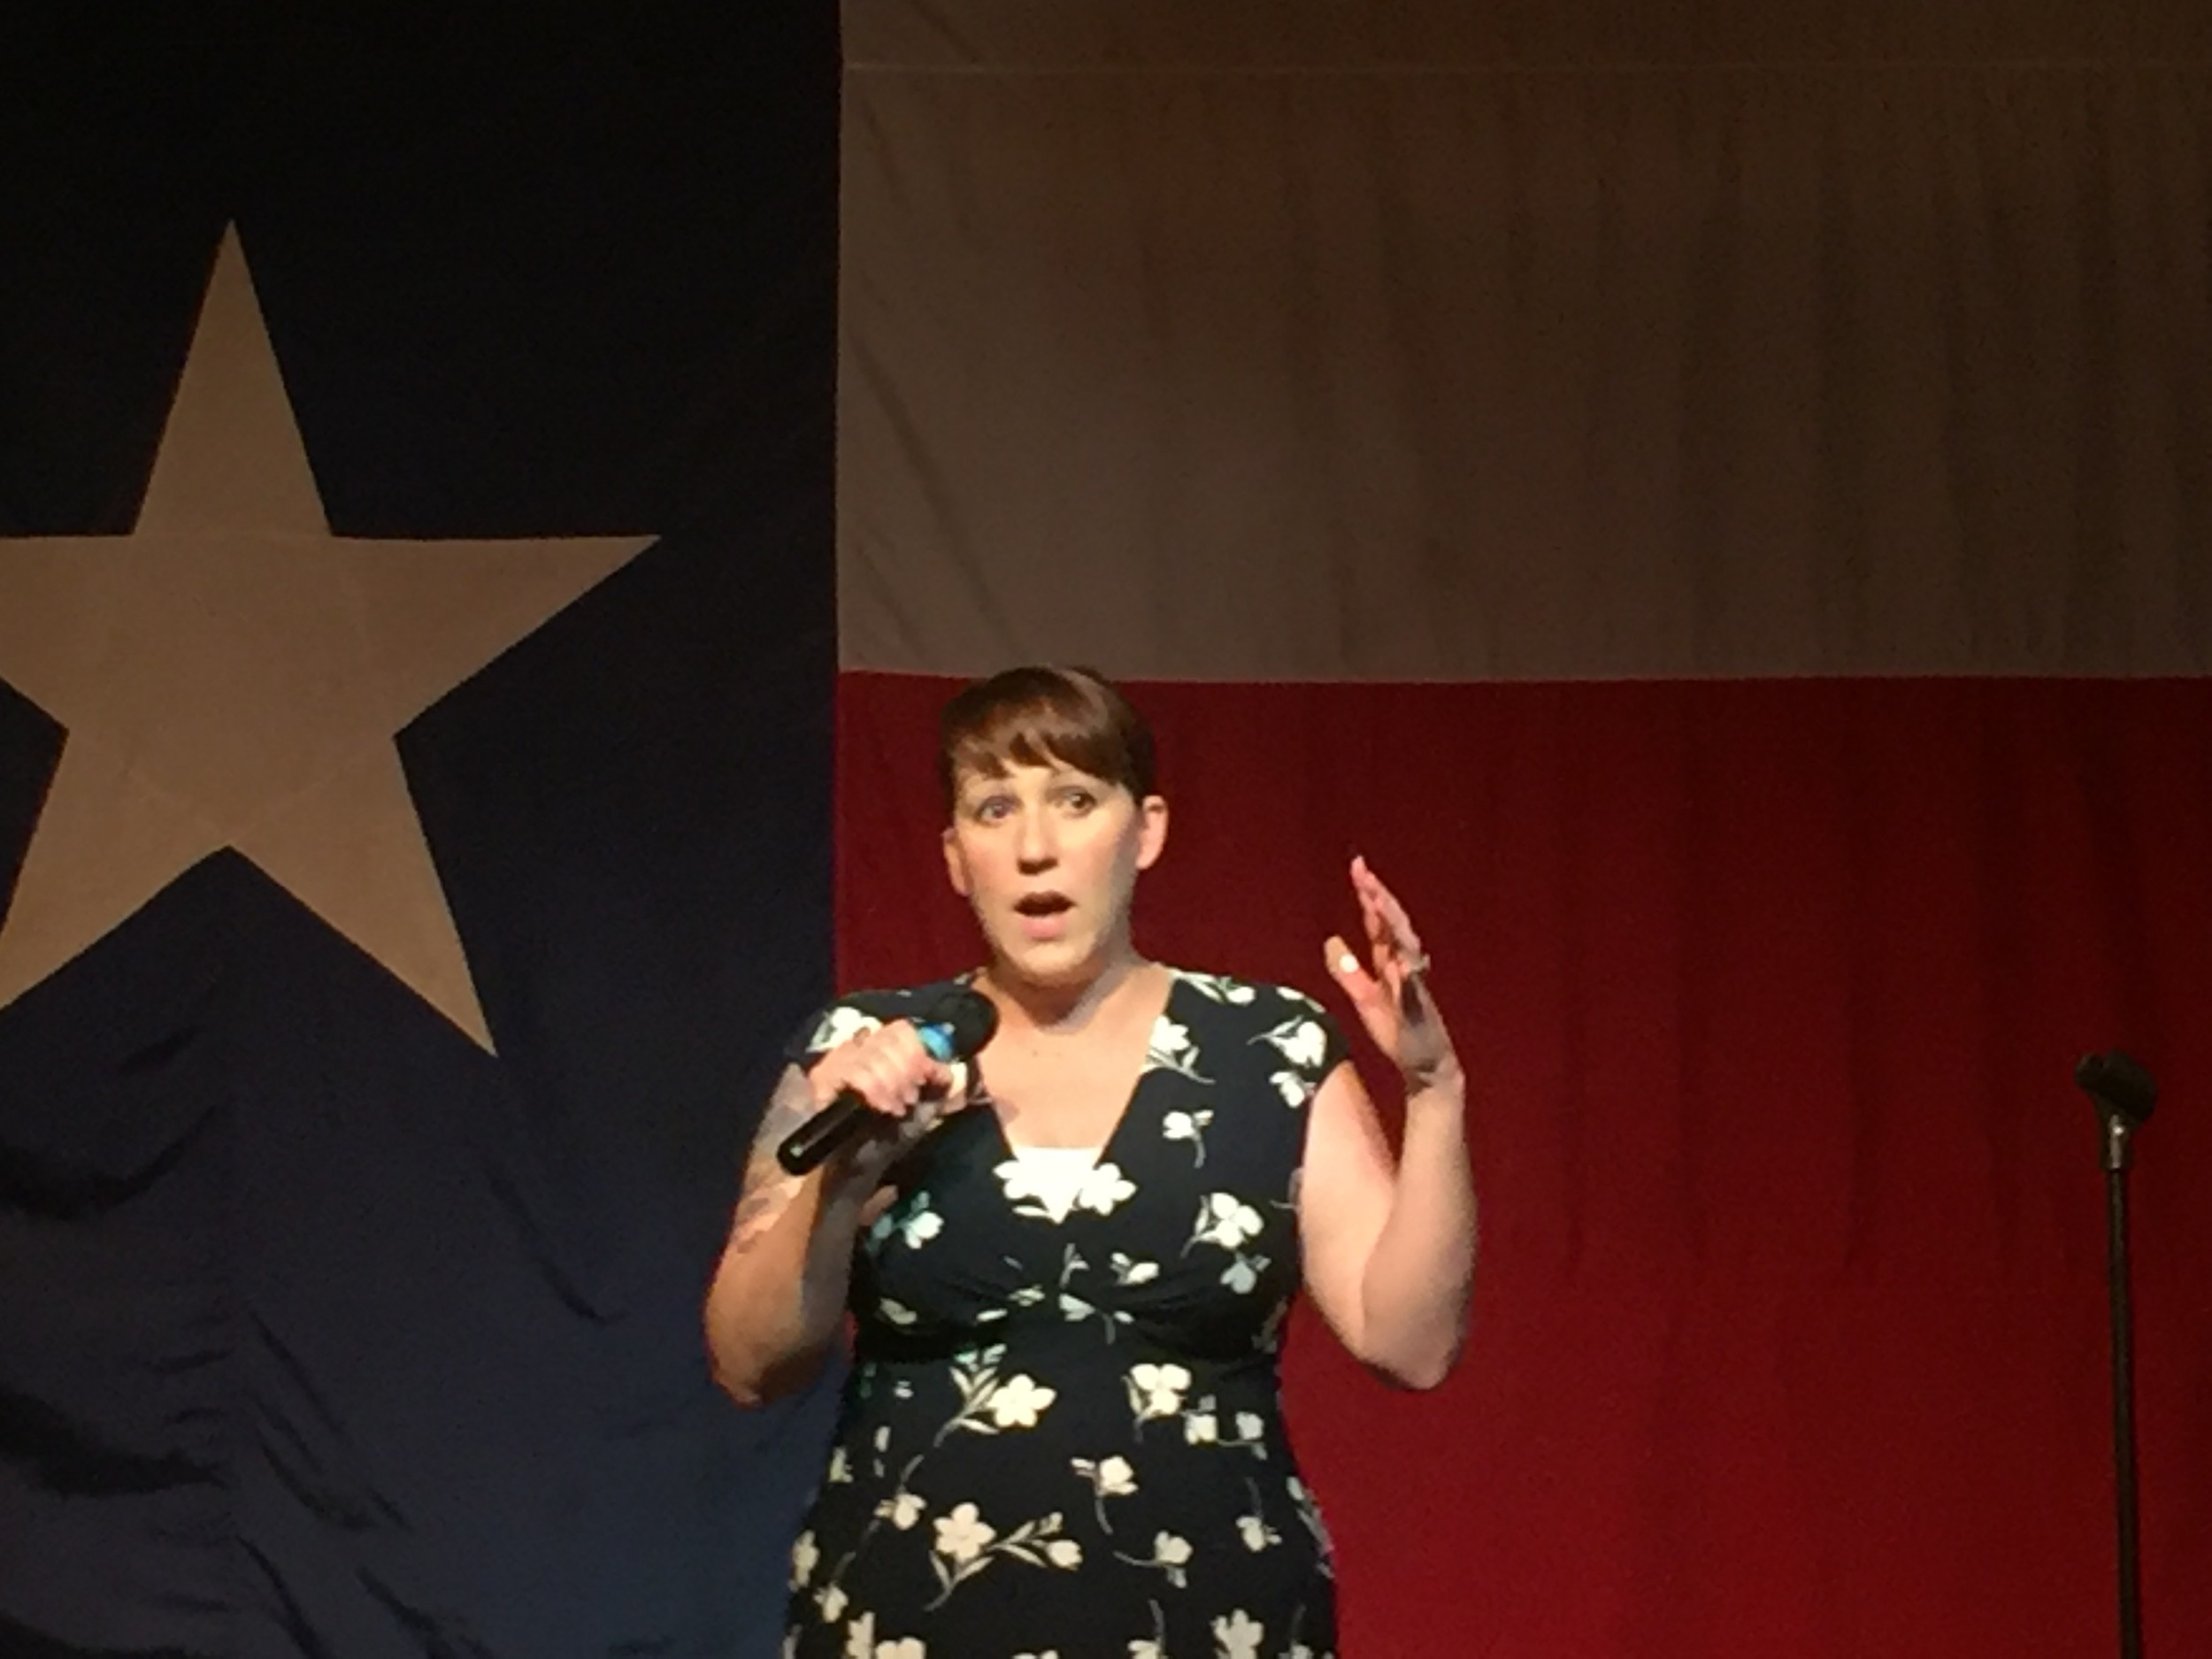 MJ Hegar, a decorated Afghanistan war hero, spoke to a cheering crowd of supporters Saturday at the Old Coupland Dance Hall. She was officially kicking off her campaign for the Democratic nomination to challenge incumbent U.S. Rep. John Rice Carter.